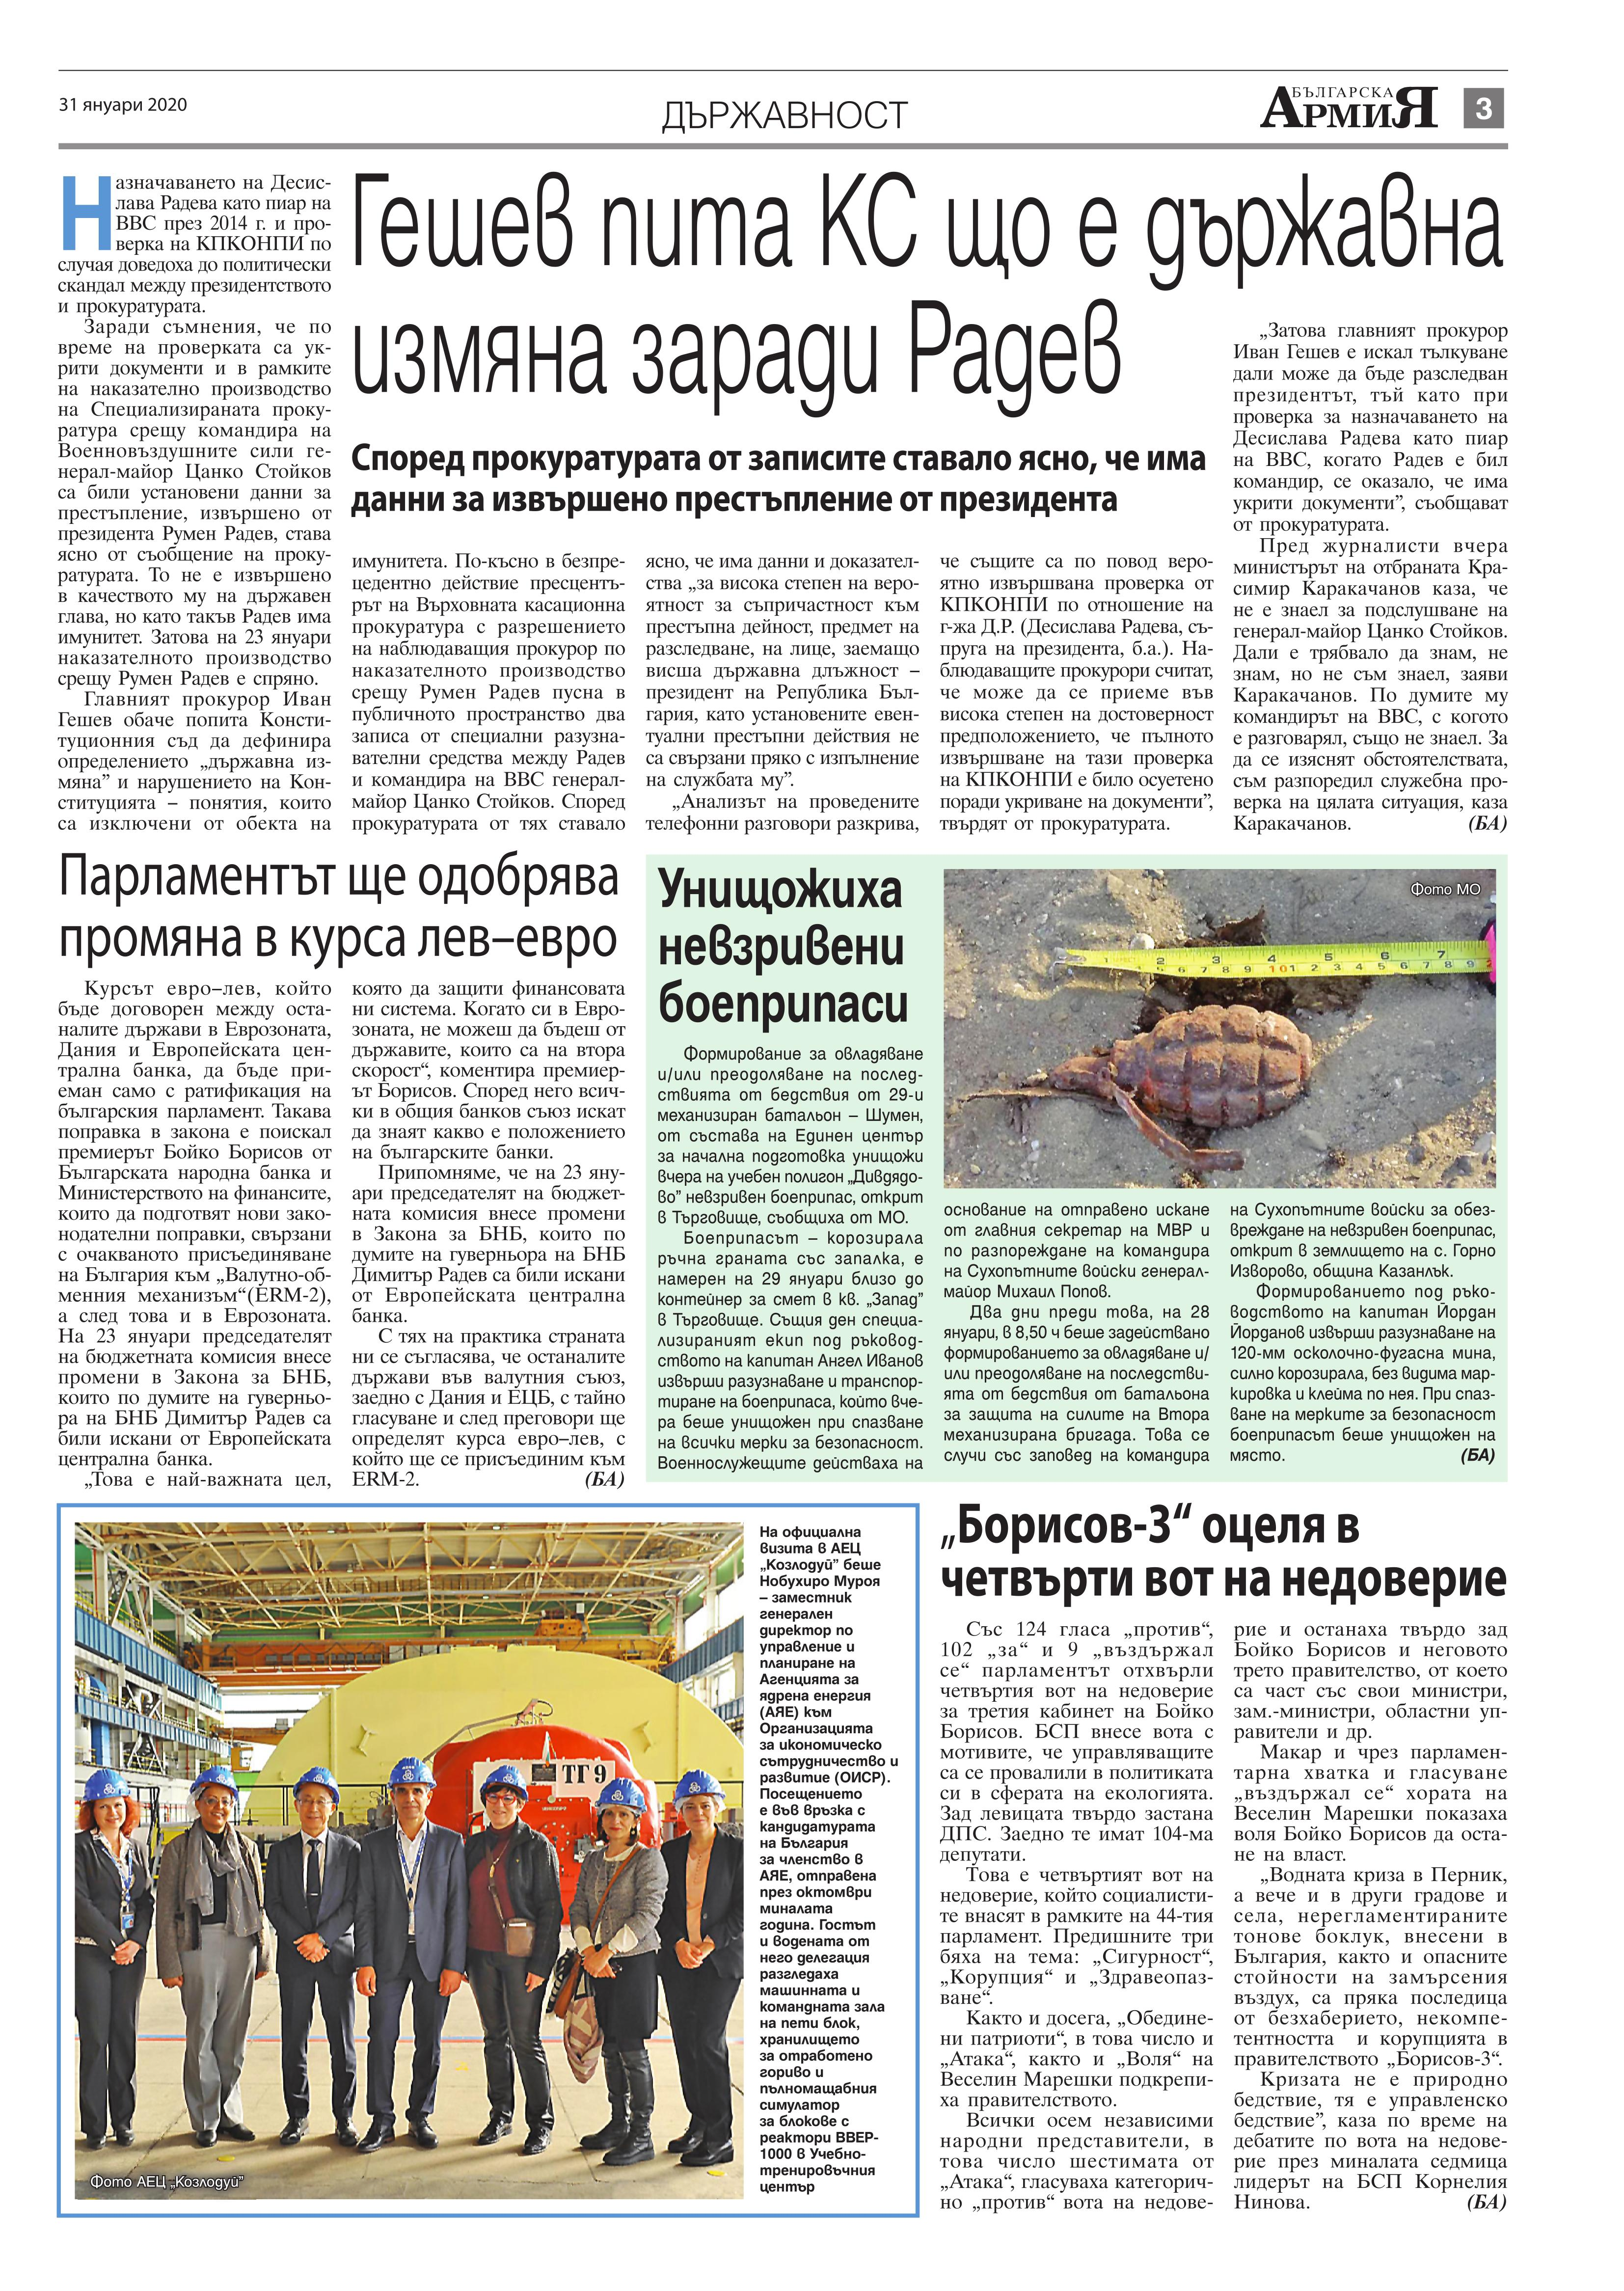 https://armymedia.bg/wp-content/uploads/2015/06/03.page1_-122.jpg